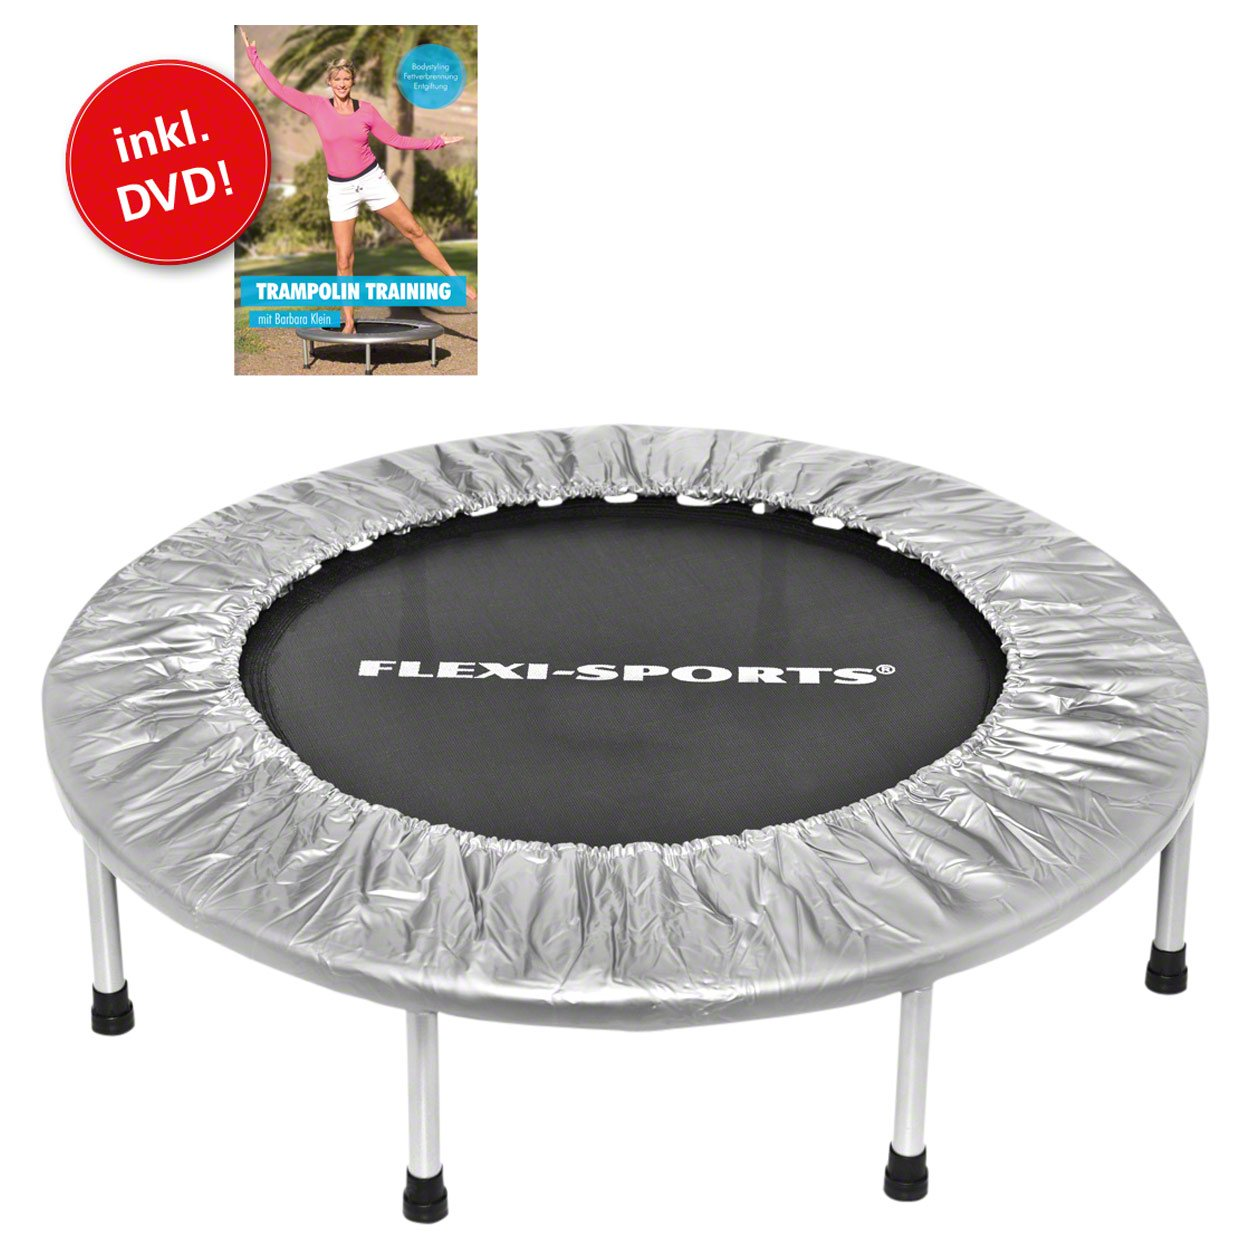 FLEXI-SPORTS® Trampolin IKON Mini 96, ø 100 cm, Fitness Indoor Trampolin, faltbar, inkl. DVD